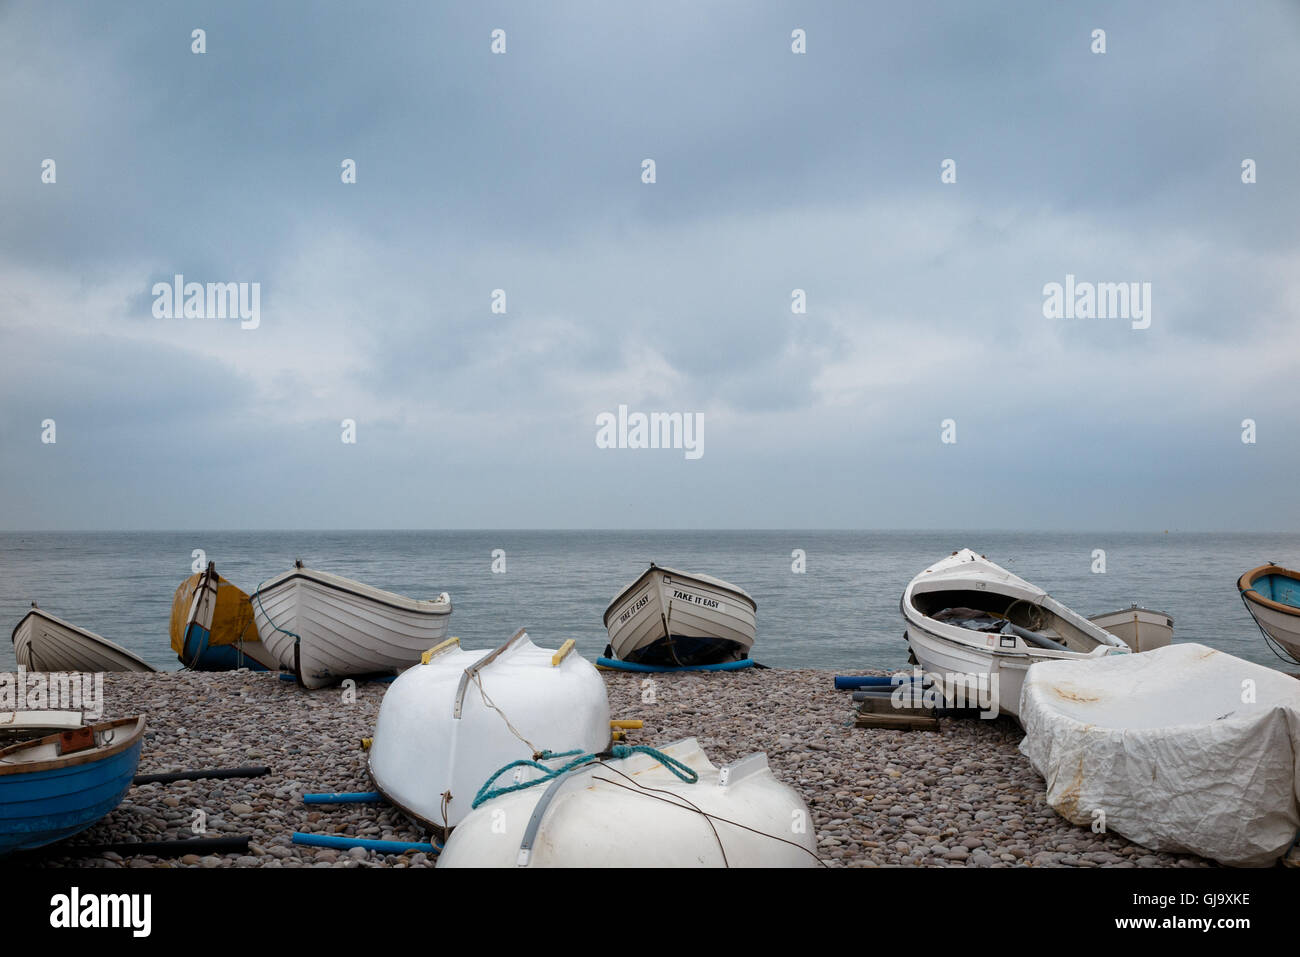 Boats on the beach at Seatown in Devon, winter.  Stormy sky Stock Photo